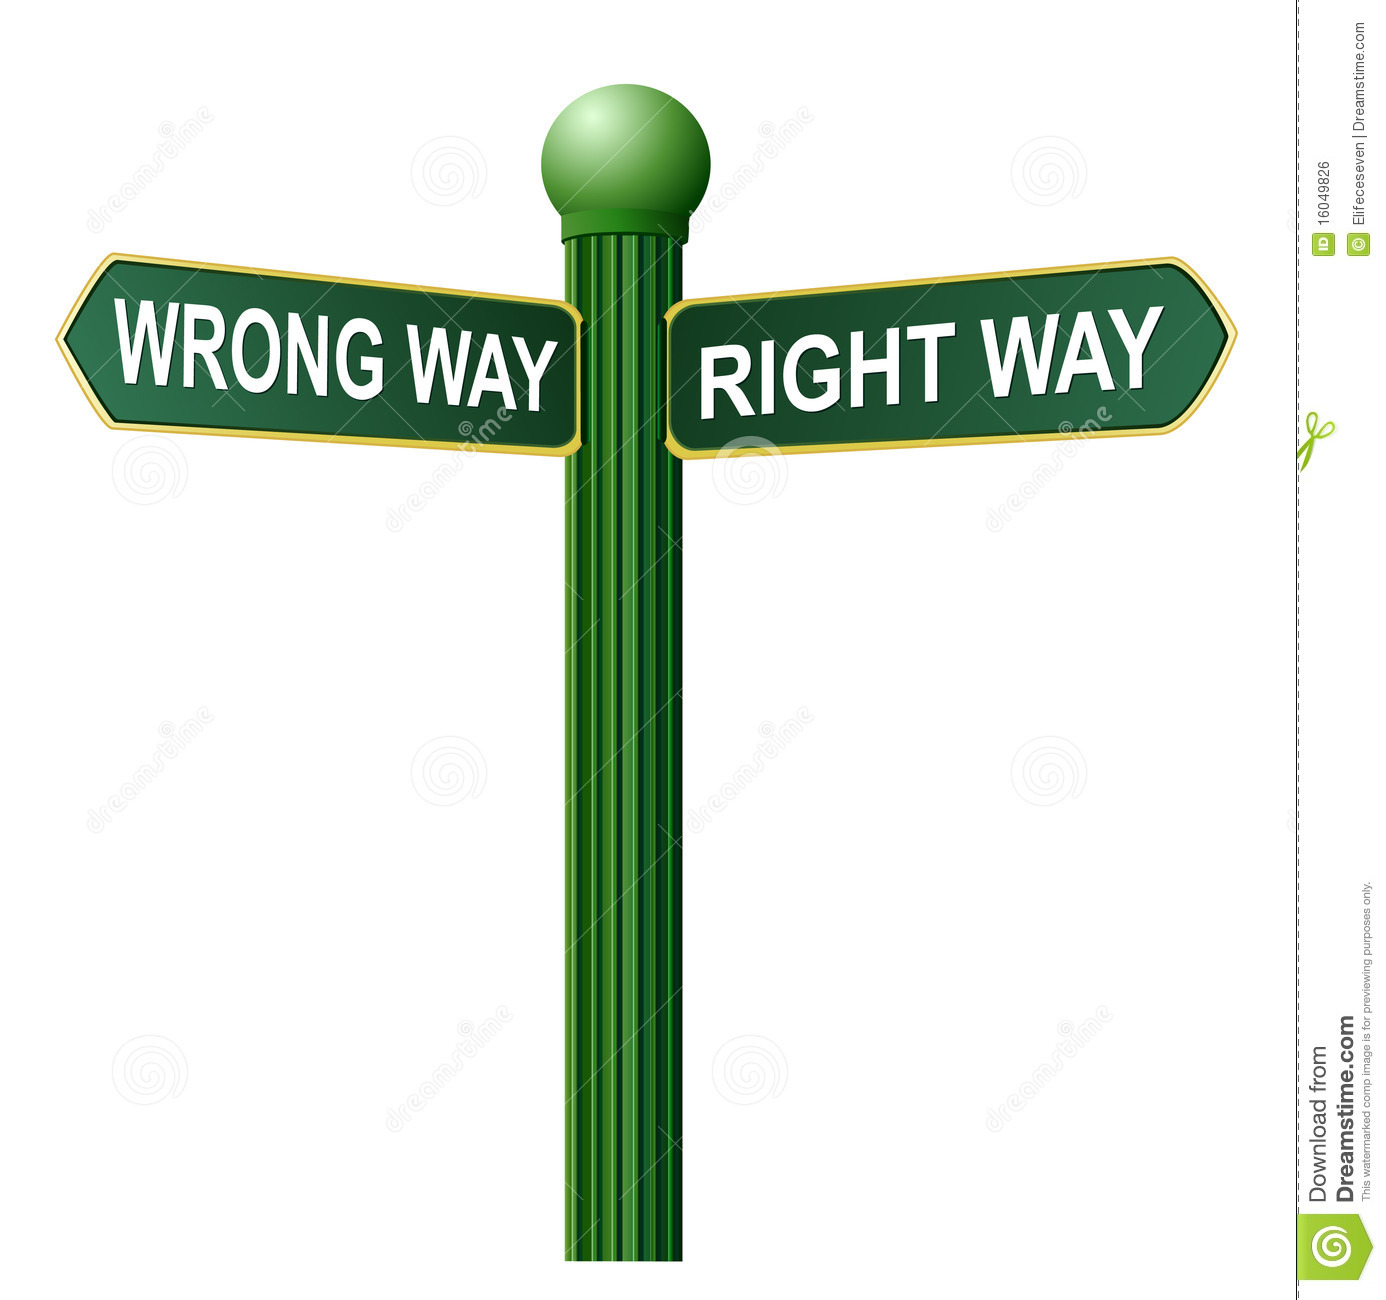 Wrong Way Right Way Street Sign Royalty Free Stock Image   Image